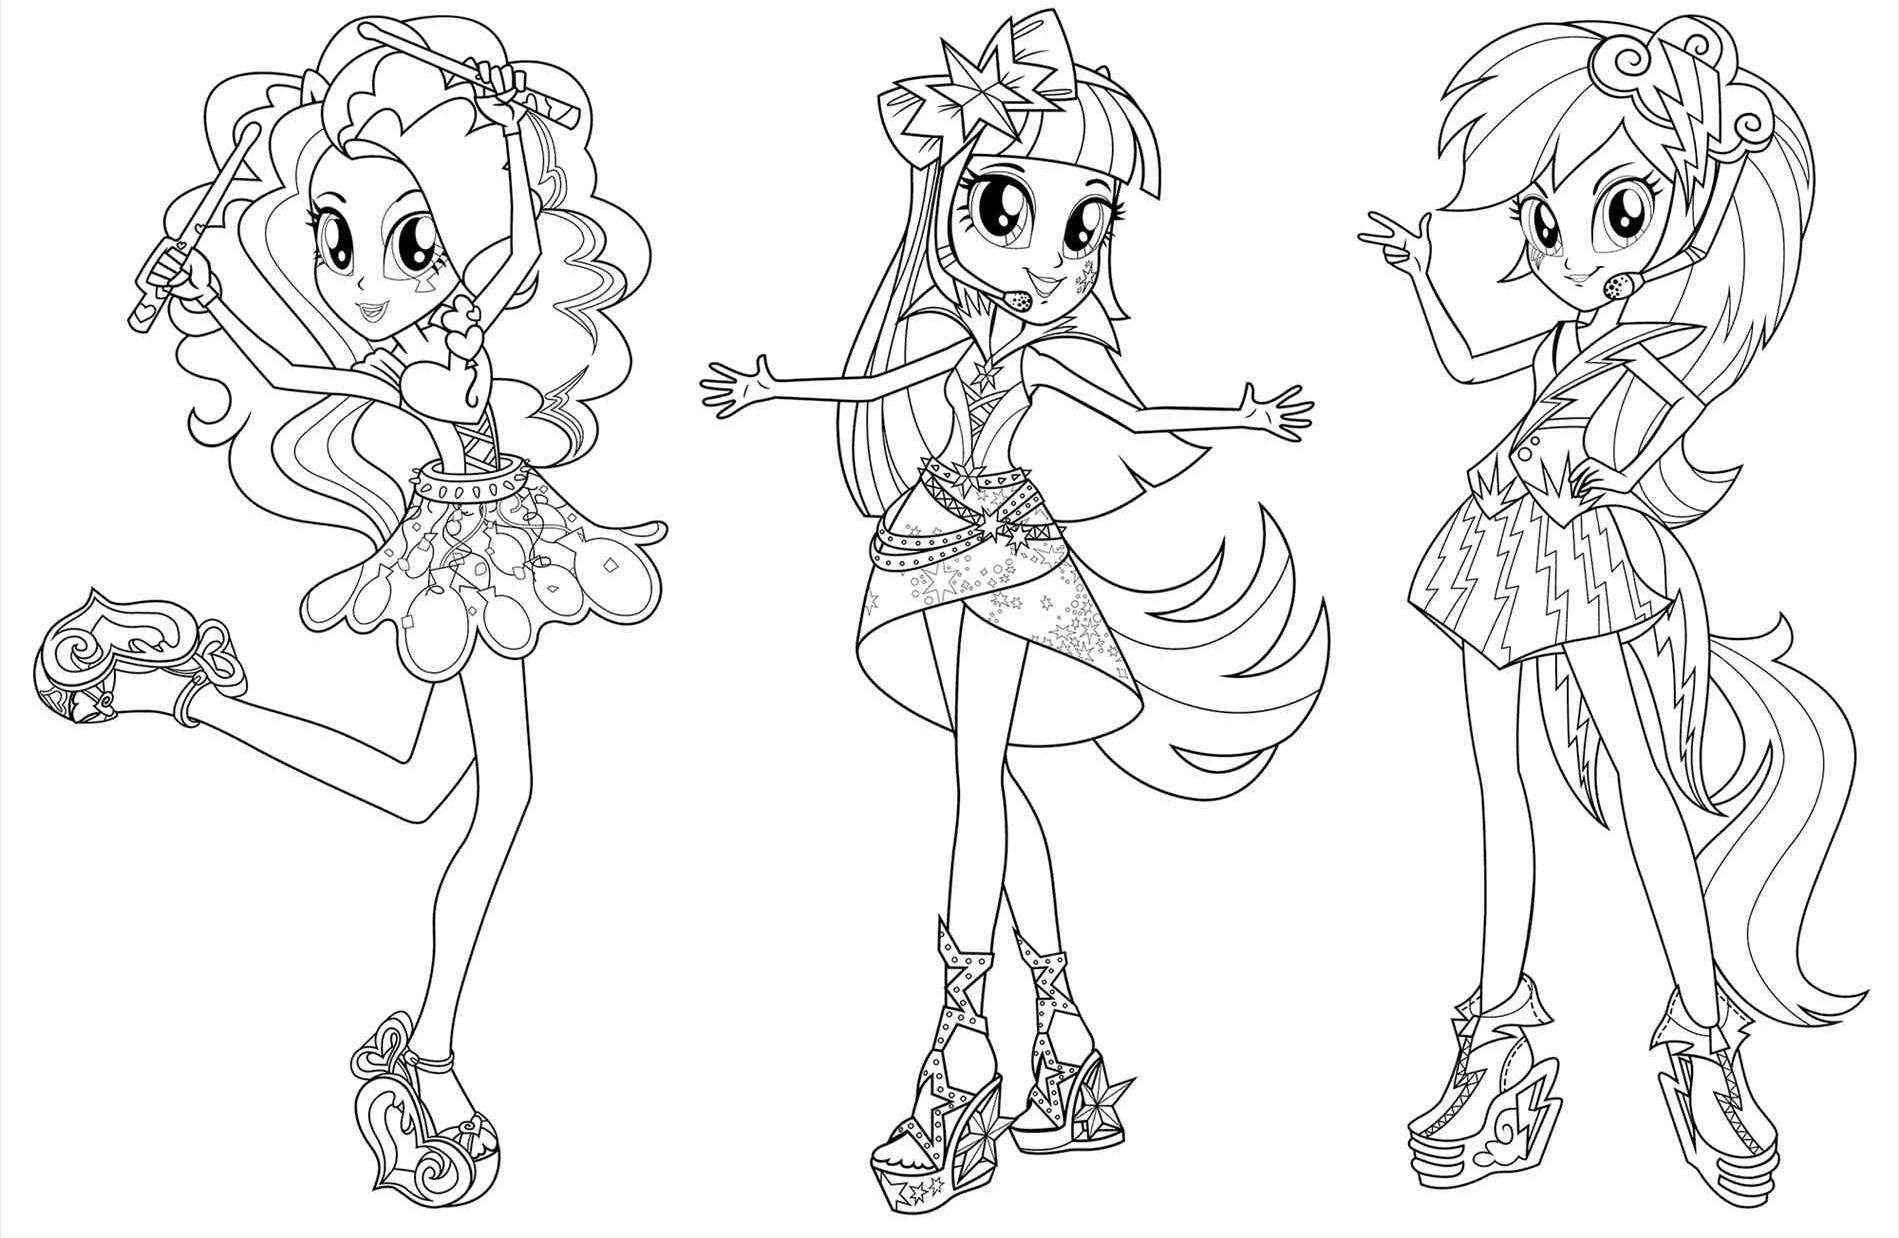 Equestria Girls Coloring Pages - Best Coloring Pages For Kids